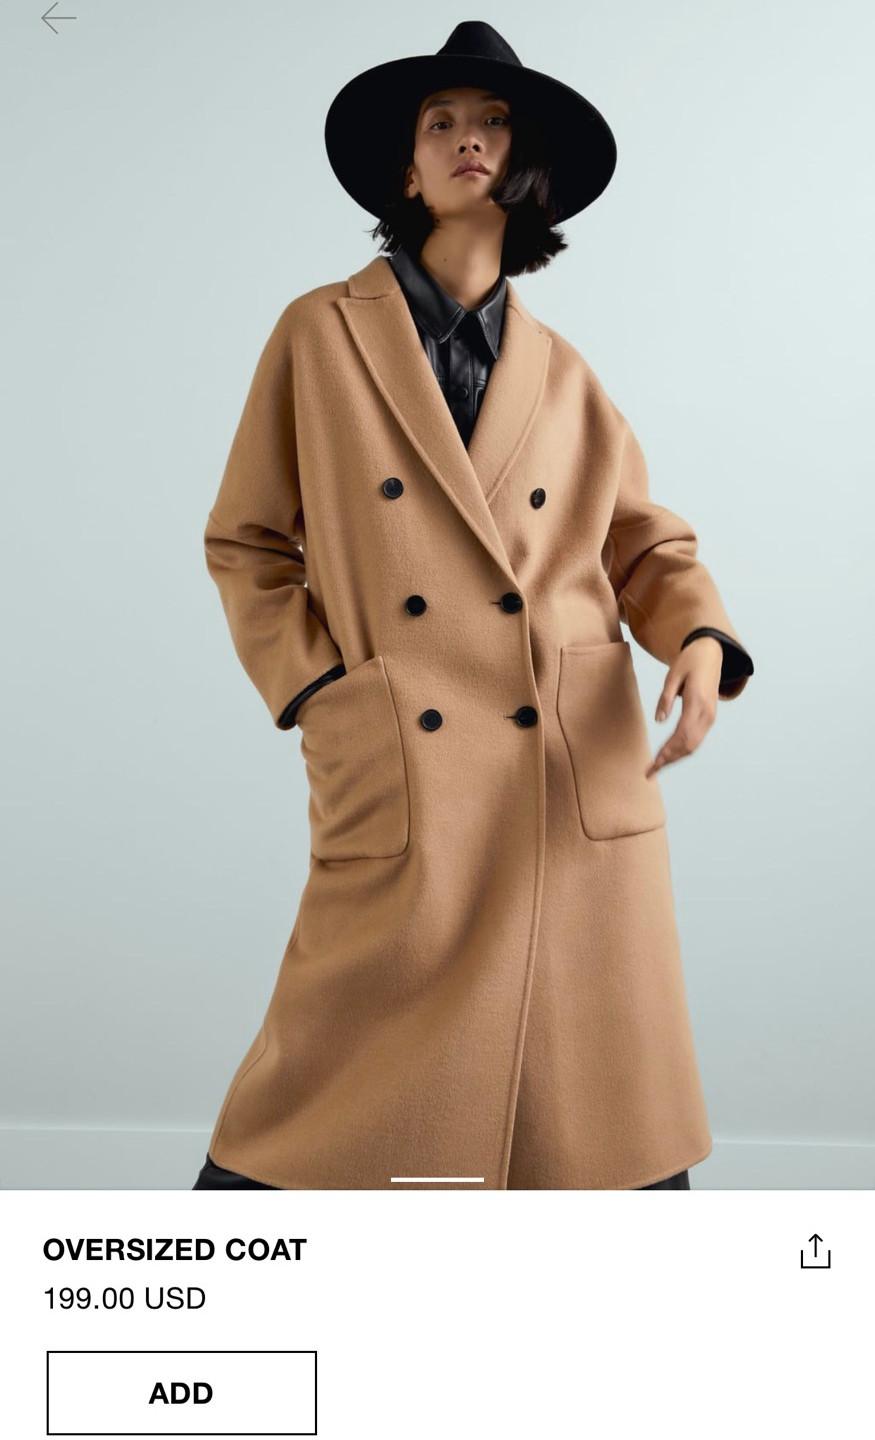 The coat for curvy women because IT WILL ACTUALLY BUTTON UP!